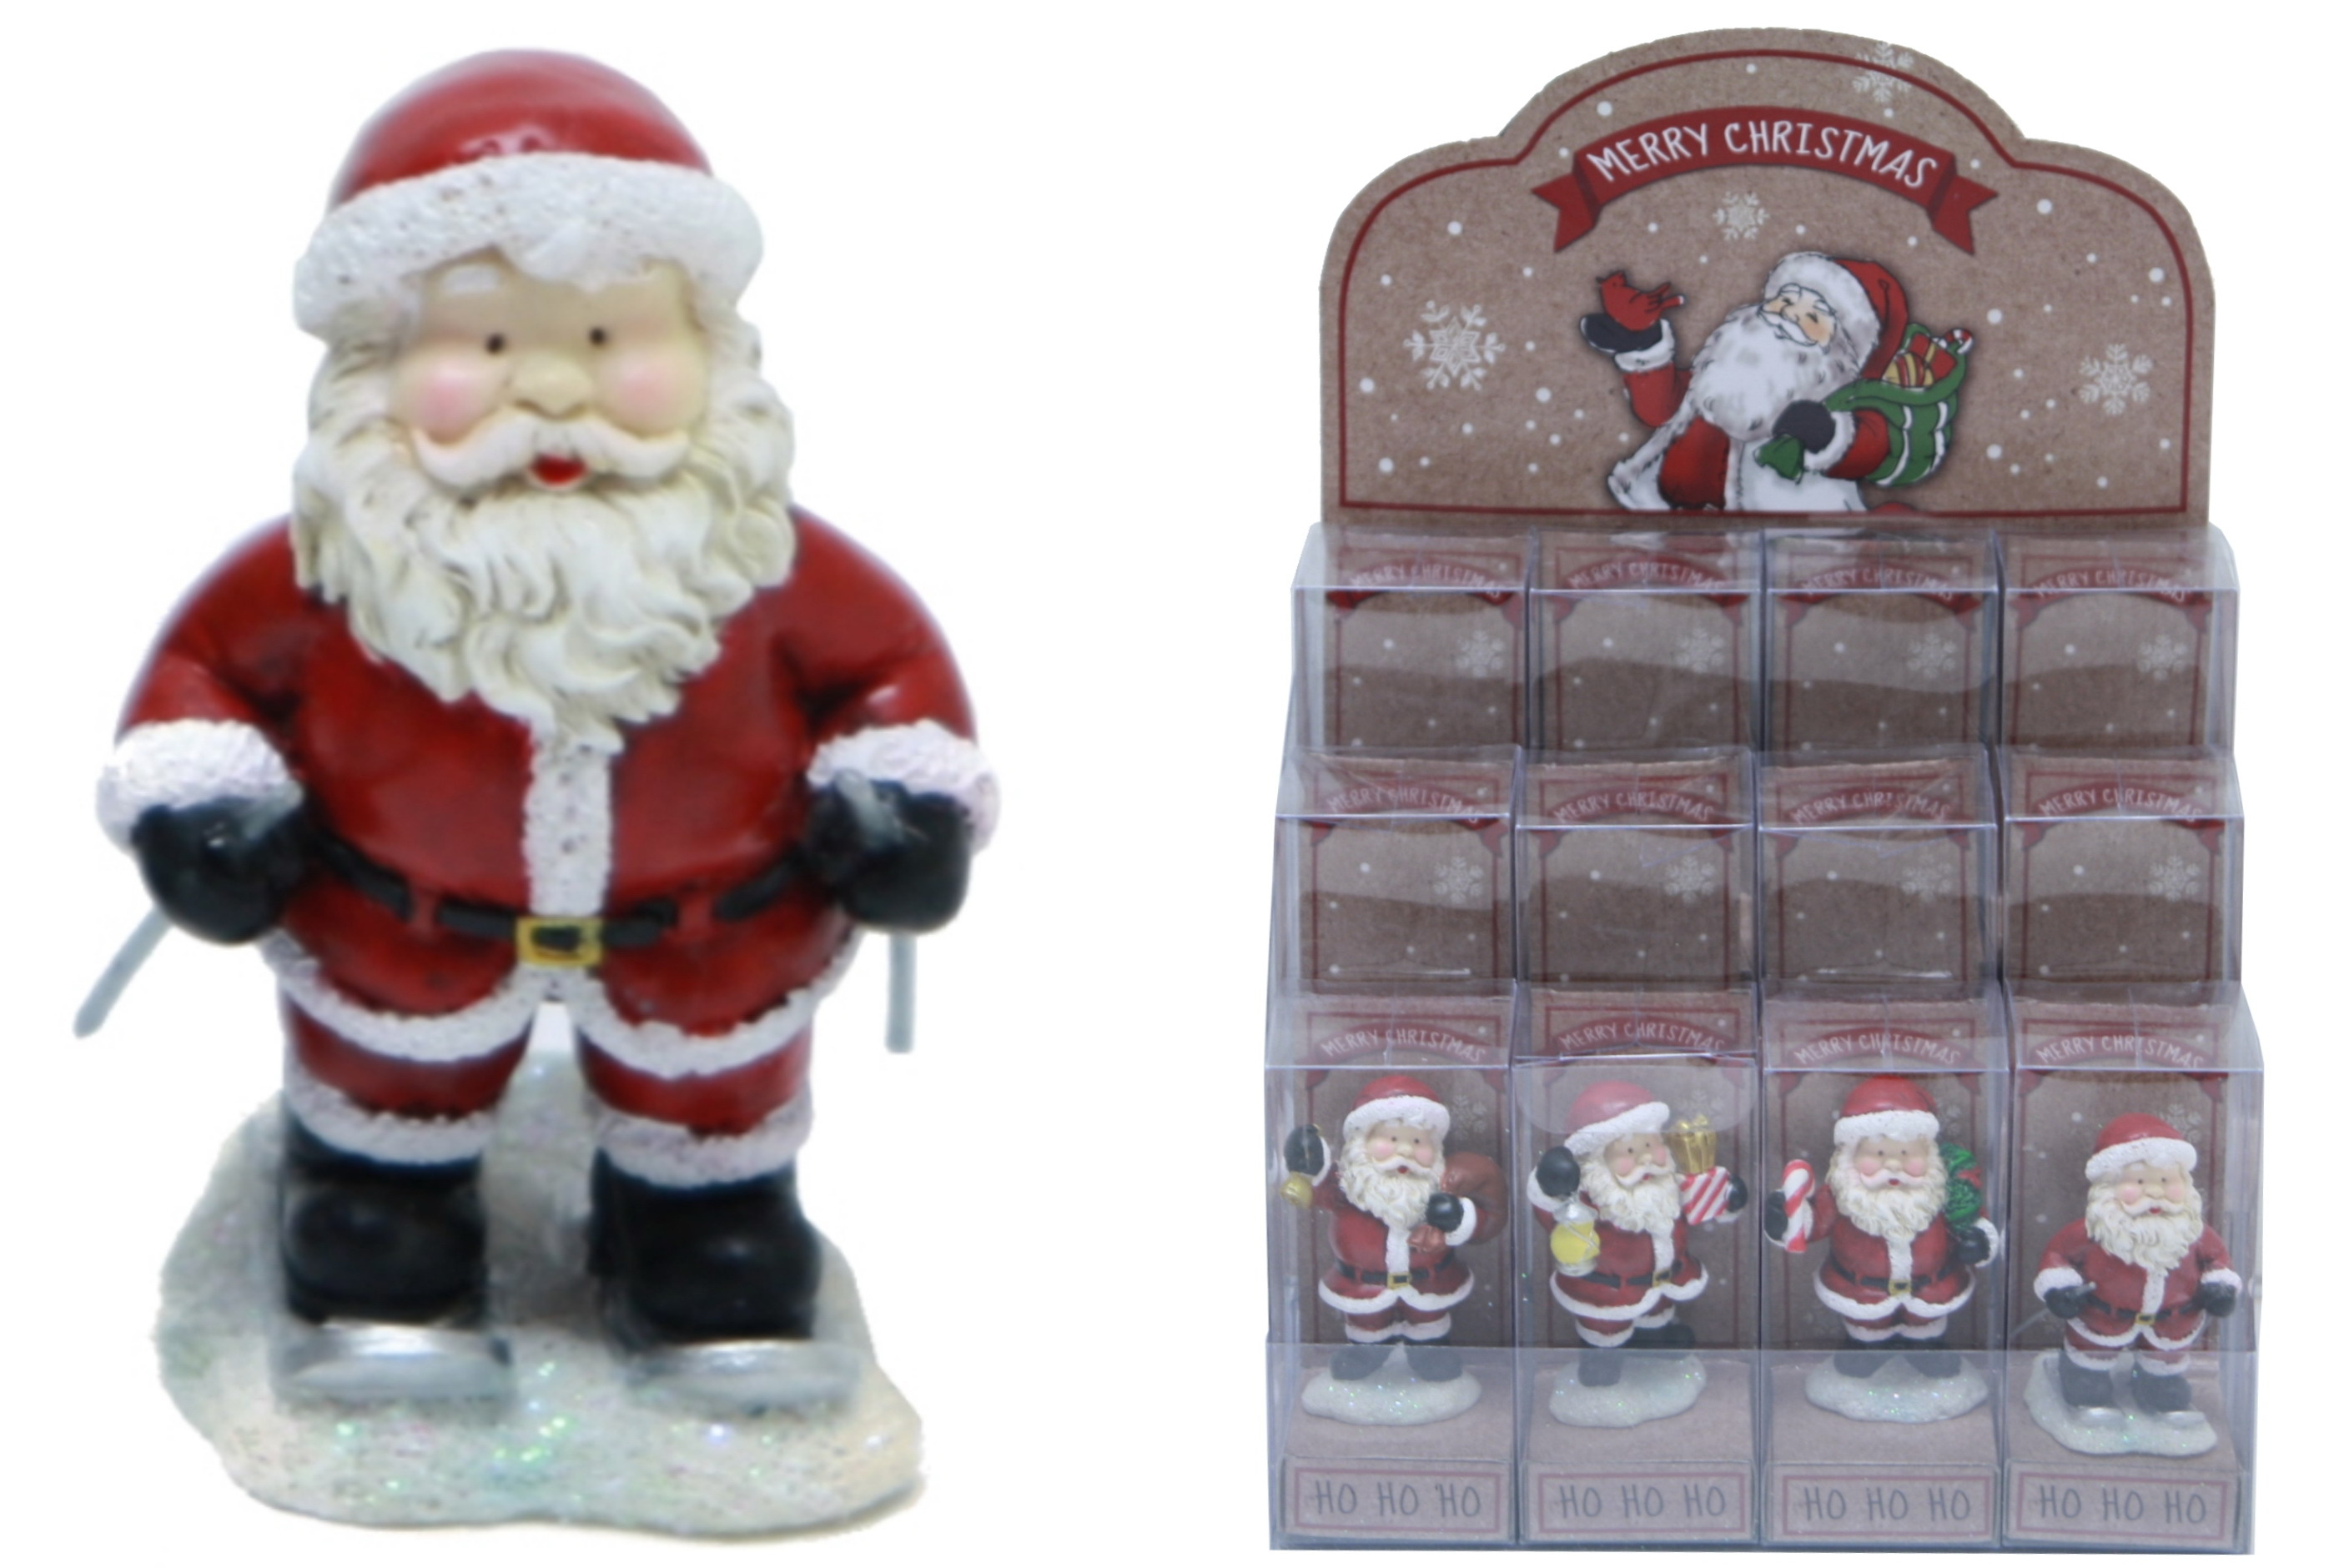 Merry Christmas Santa Figurines (4 Asst) In Display Box